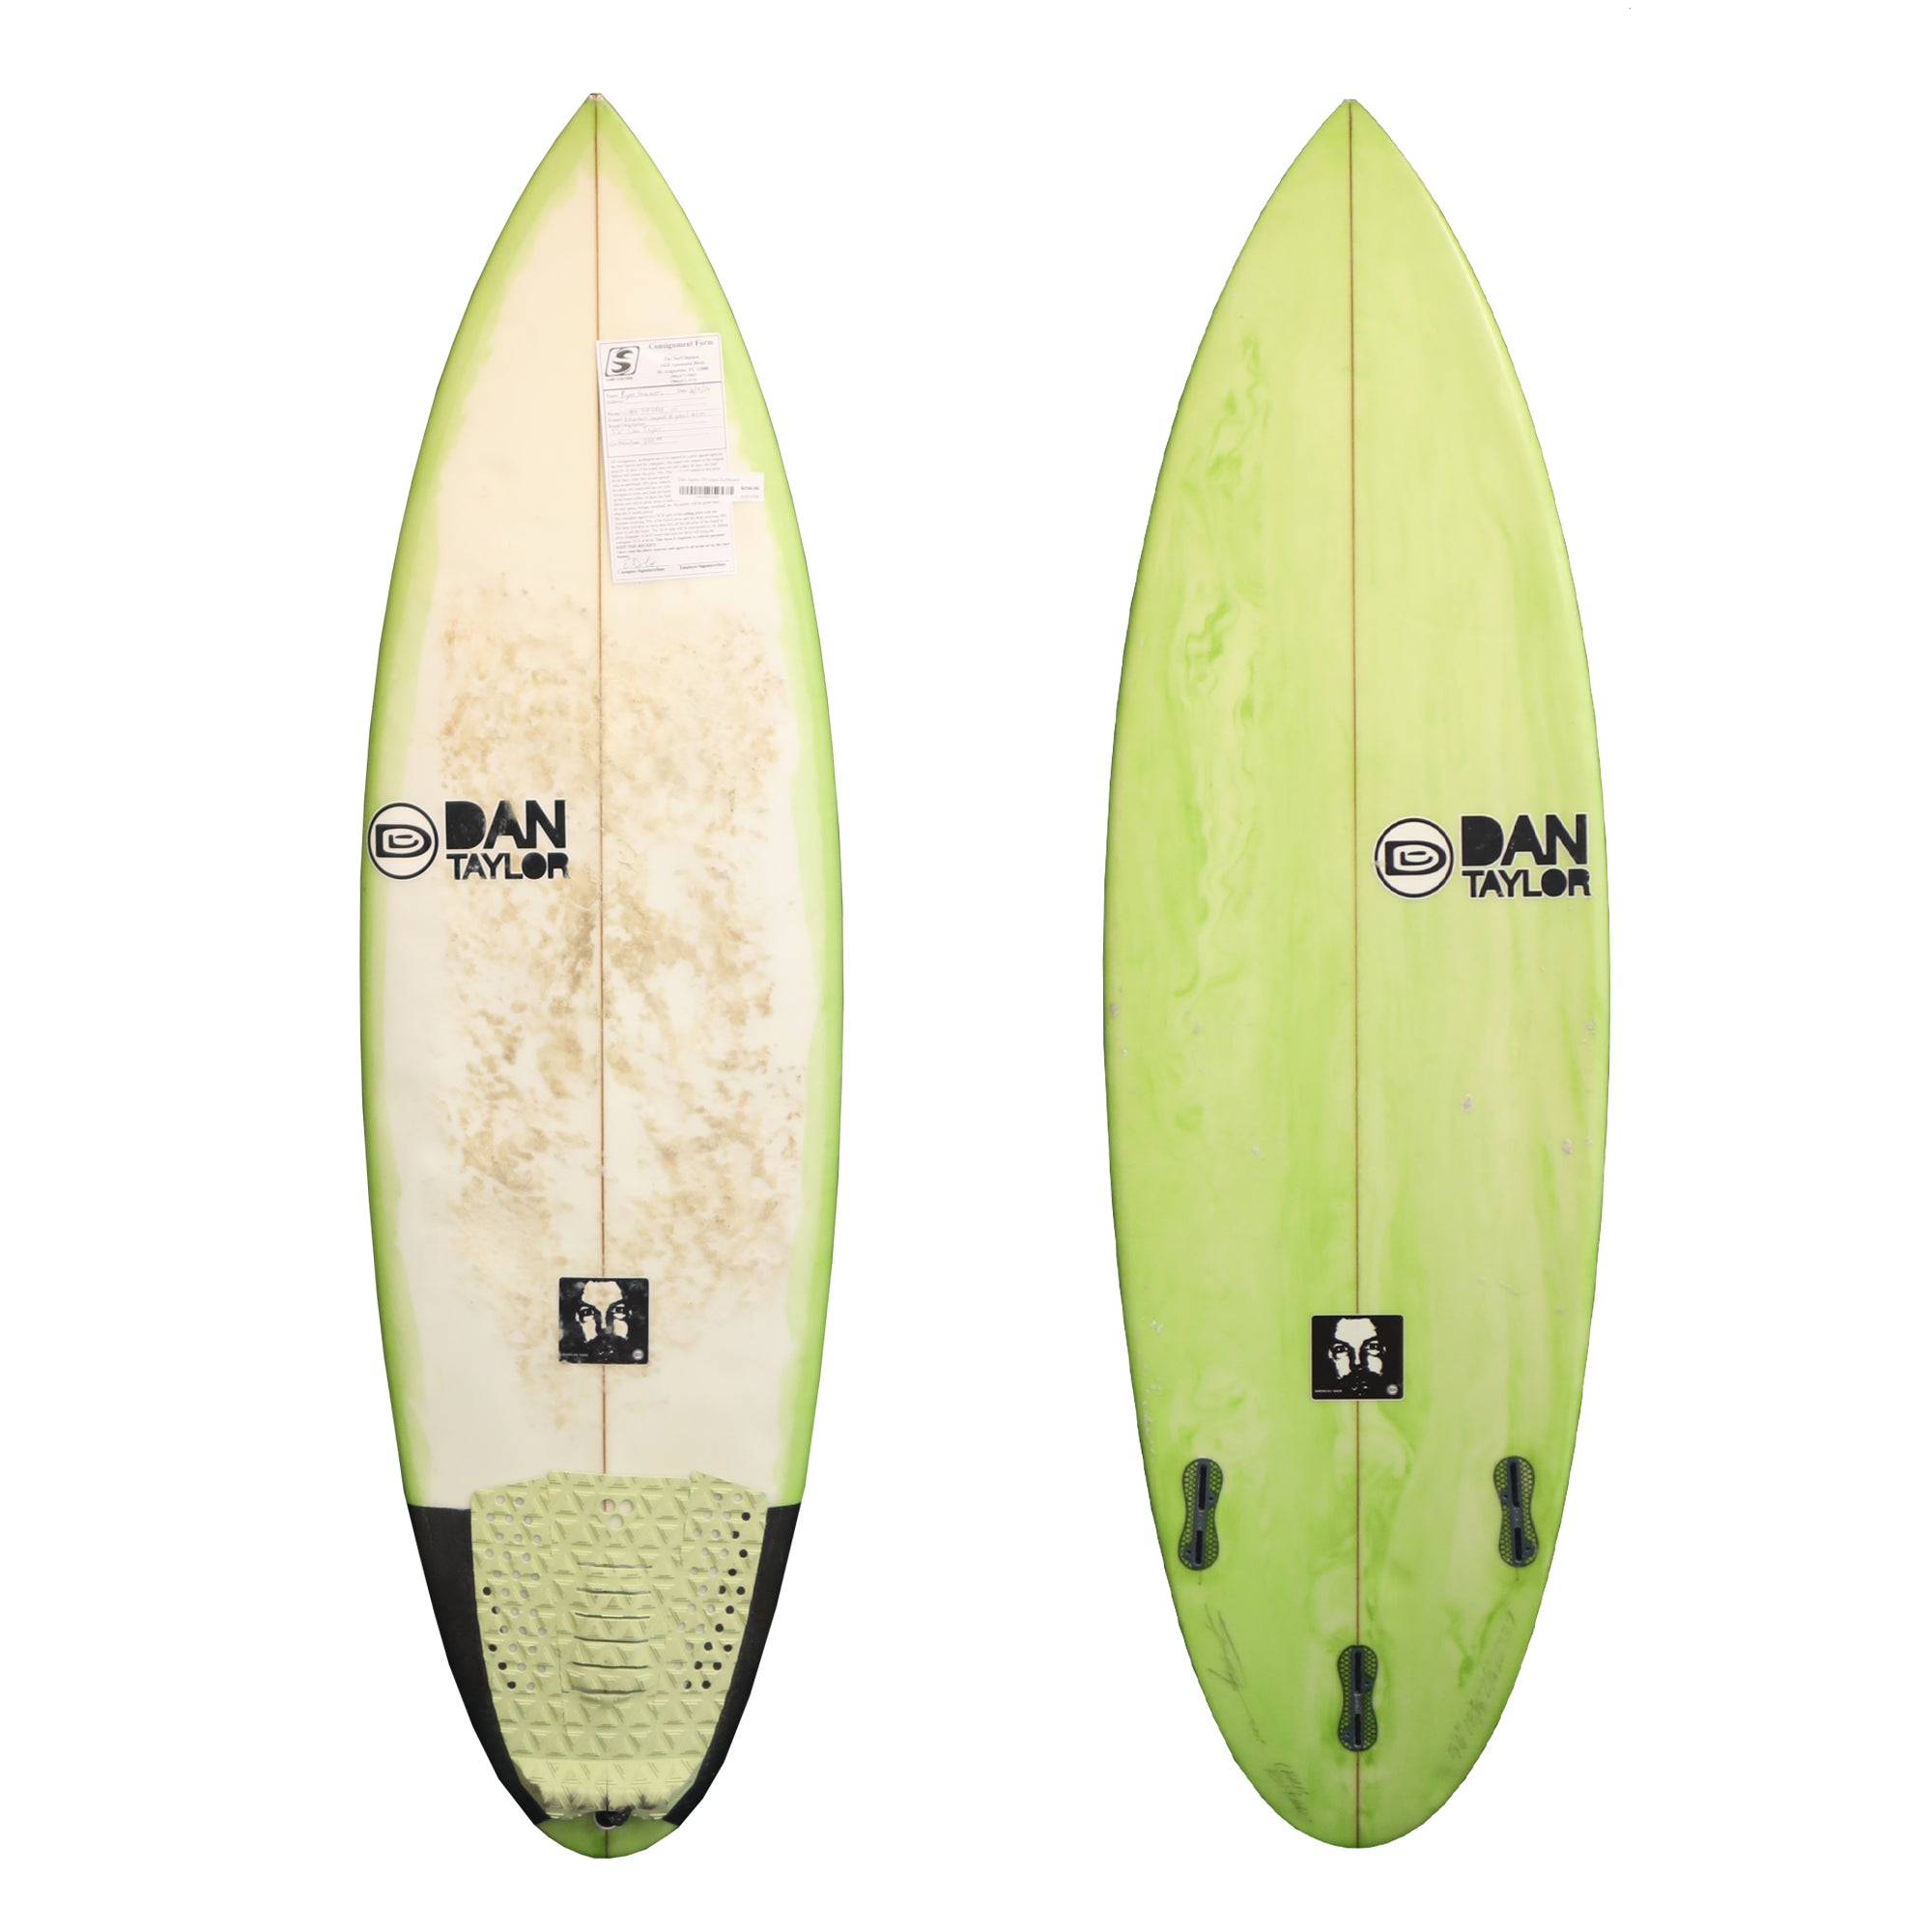 Dan Taylor 5'6 Used Surfboard